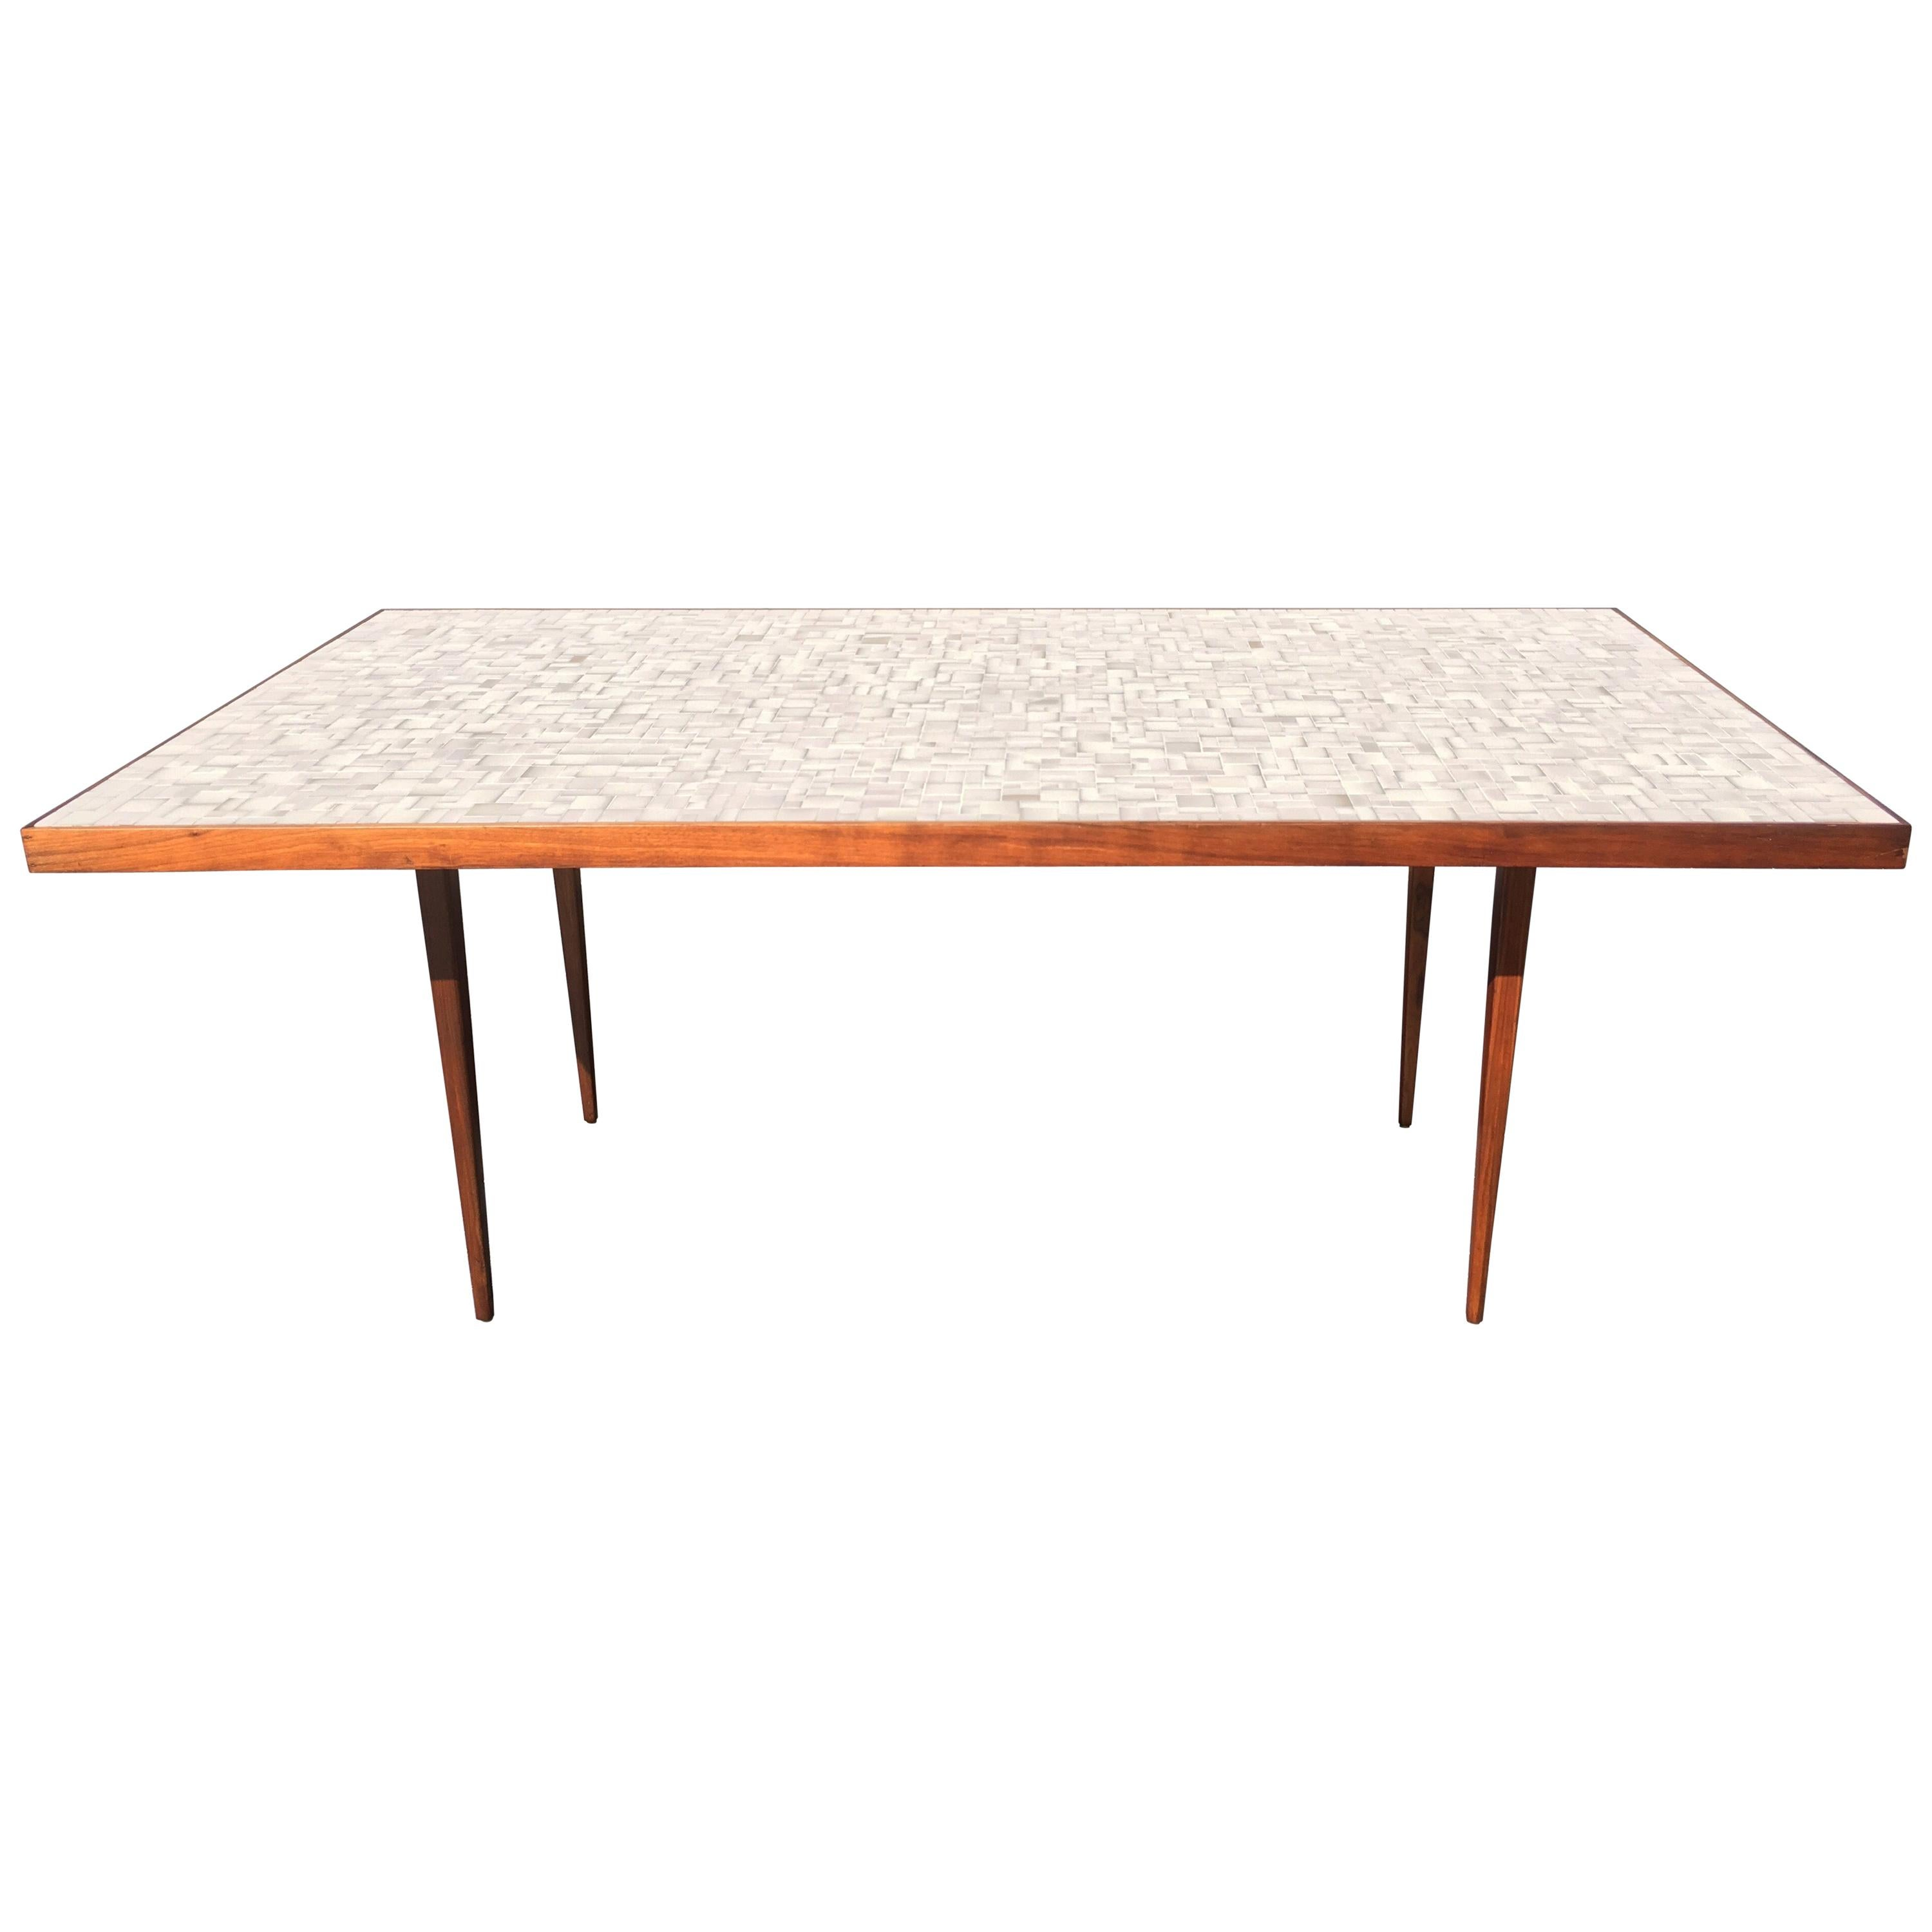 Tile Top Dining Table or Desk in the Style of Gordon Jane Martz, Walnut, Mosaic